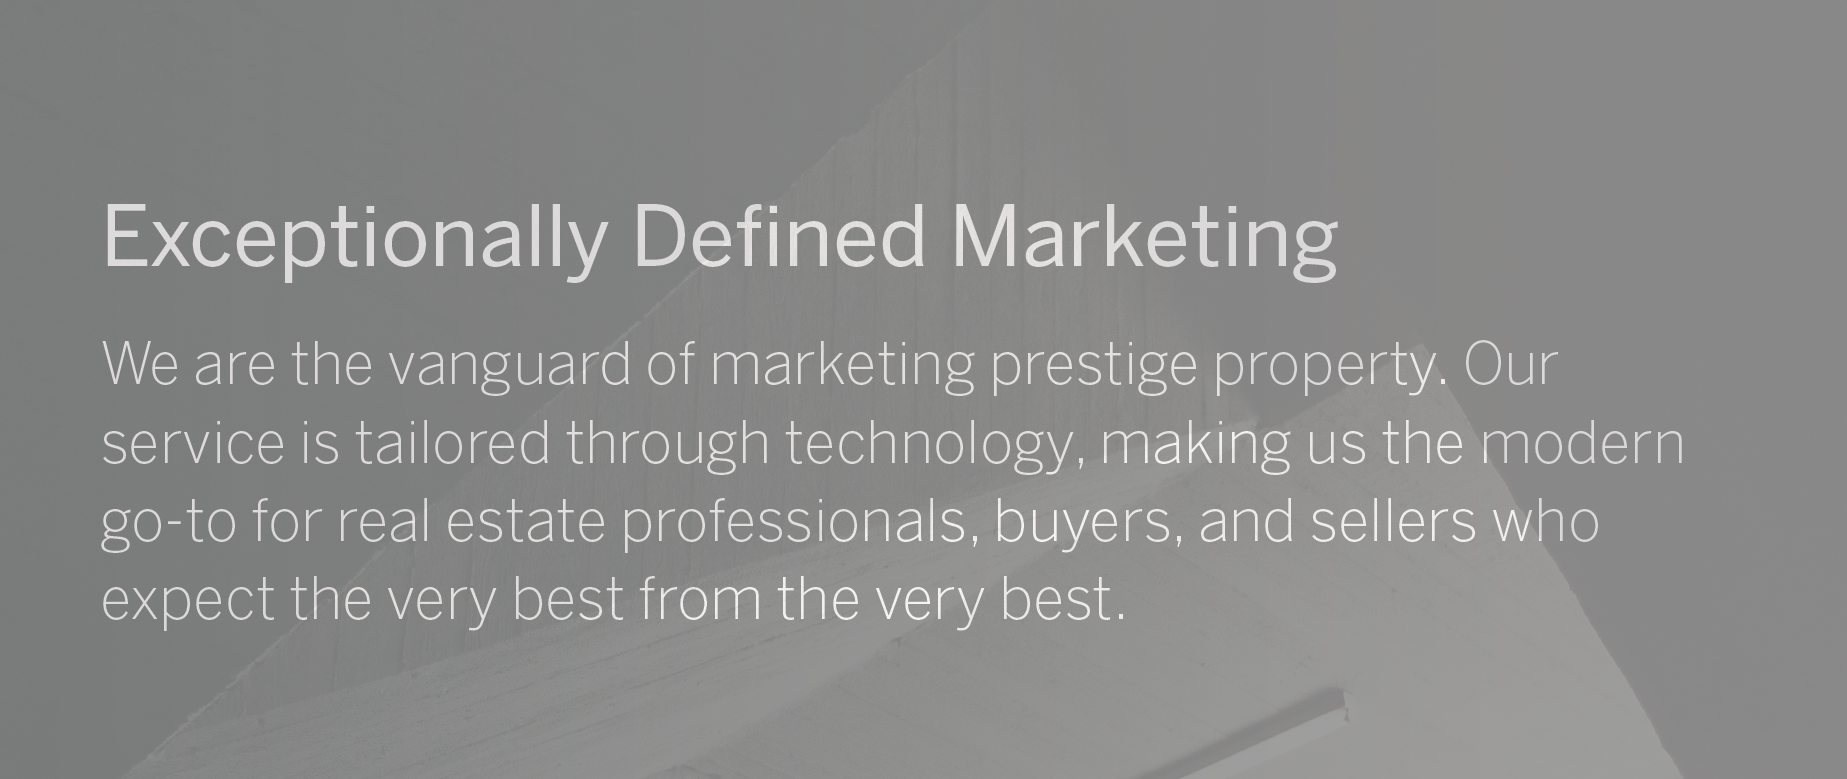 Exceptionally Defined Marketing